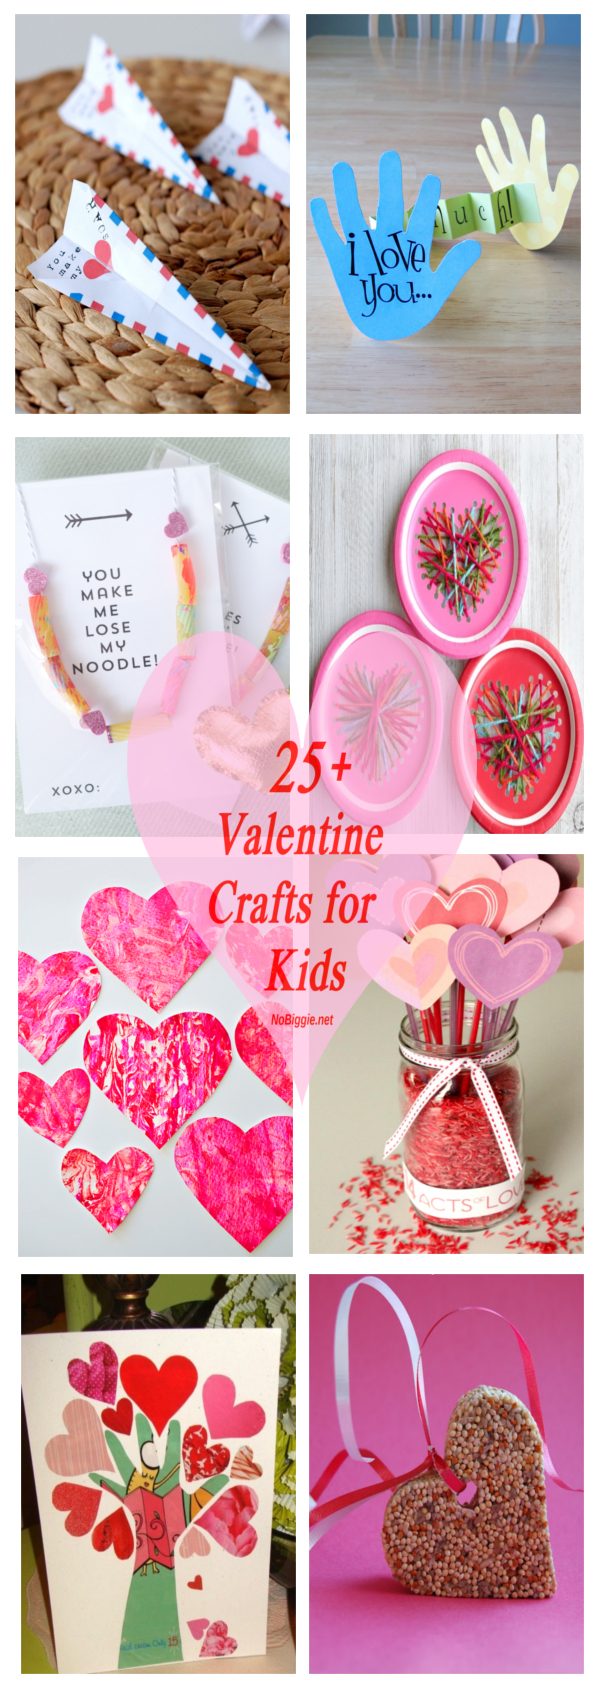 Valentine Crafts for Kids that are perfect for everyone! #valentinesday #crafts #valentinecrafts #kidscrafts #craftsforkids